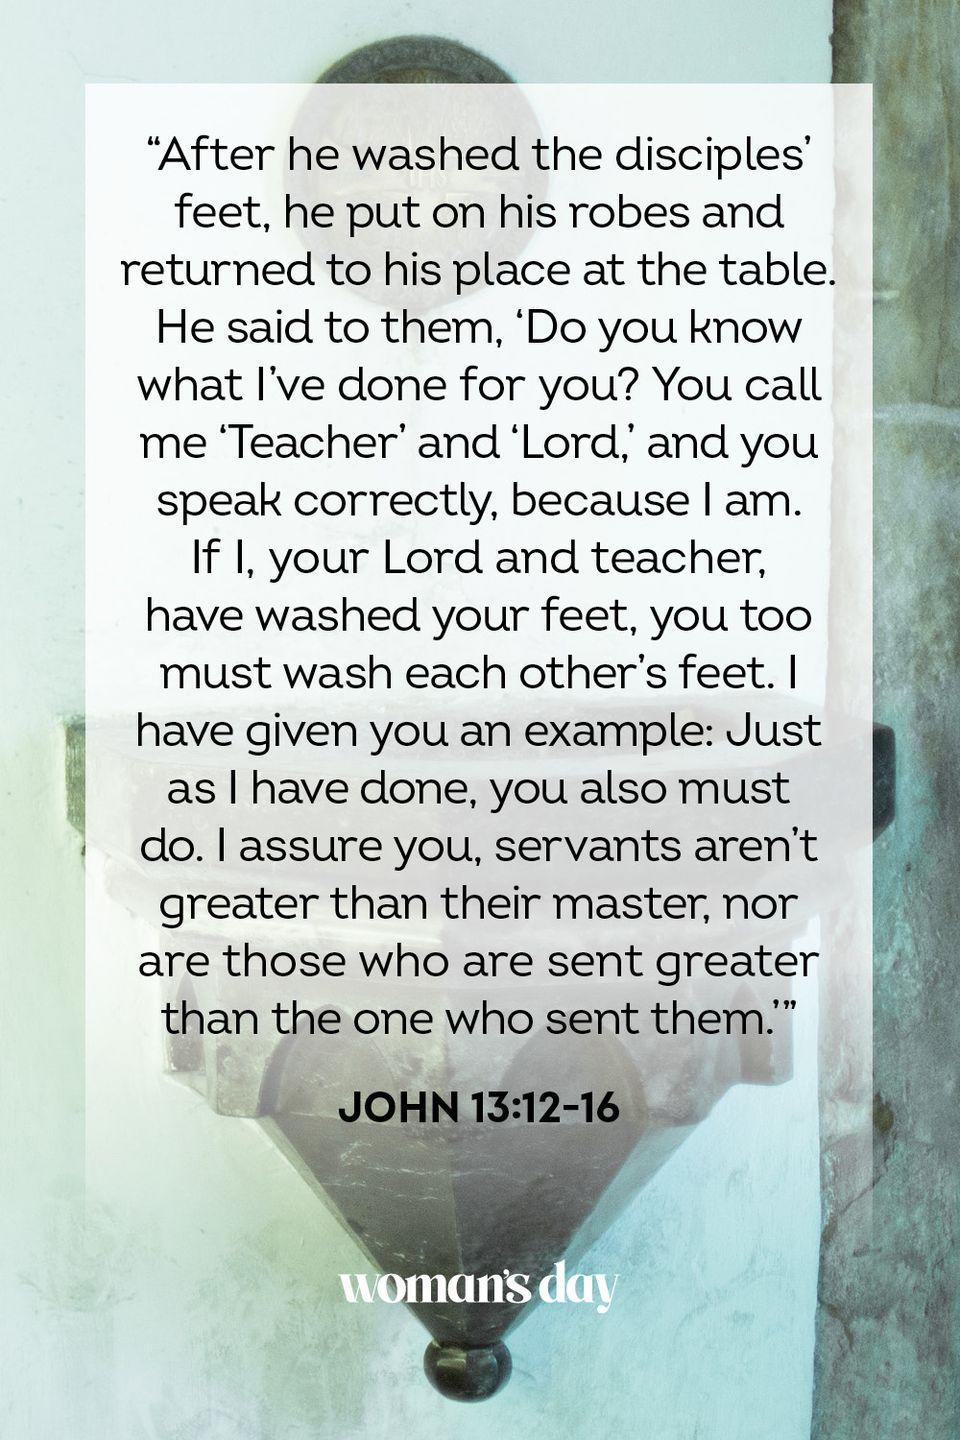 "<p>""After he washed the disciples' feet, he put on his robes and returned to his place at the table. He said to them, 'Do you know what I've done for you? You call me 'Teacher' and 'Lord,' and you speak correctly, because I am. If I, your Lord and teacher, have washed your feet, you too must wash each other's feet. I have given you an example: Just as I have done, you also must do. I assure you, servants aren't greater than their master, nor are those who are sent greater than the one who sent them.'"" — John 13:12-16</p>"